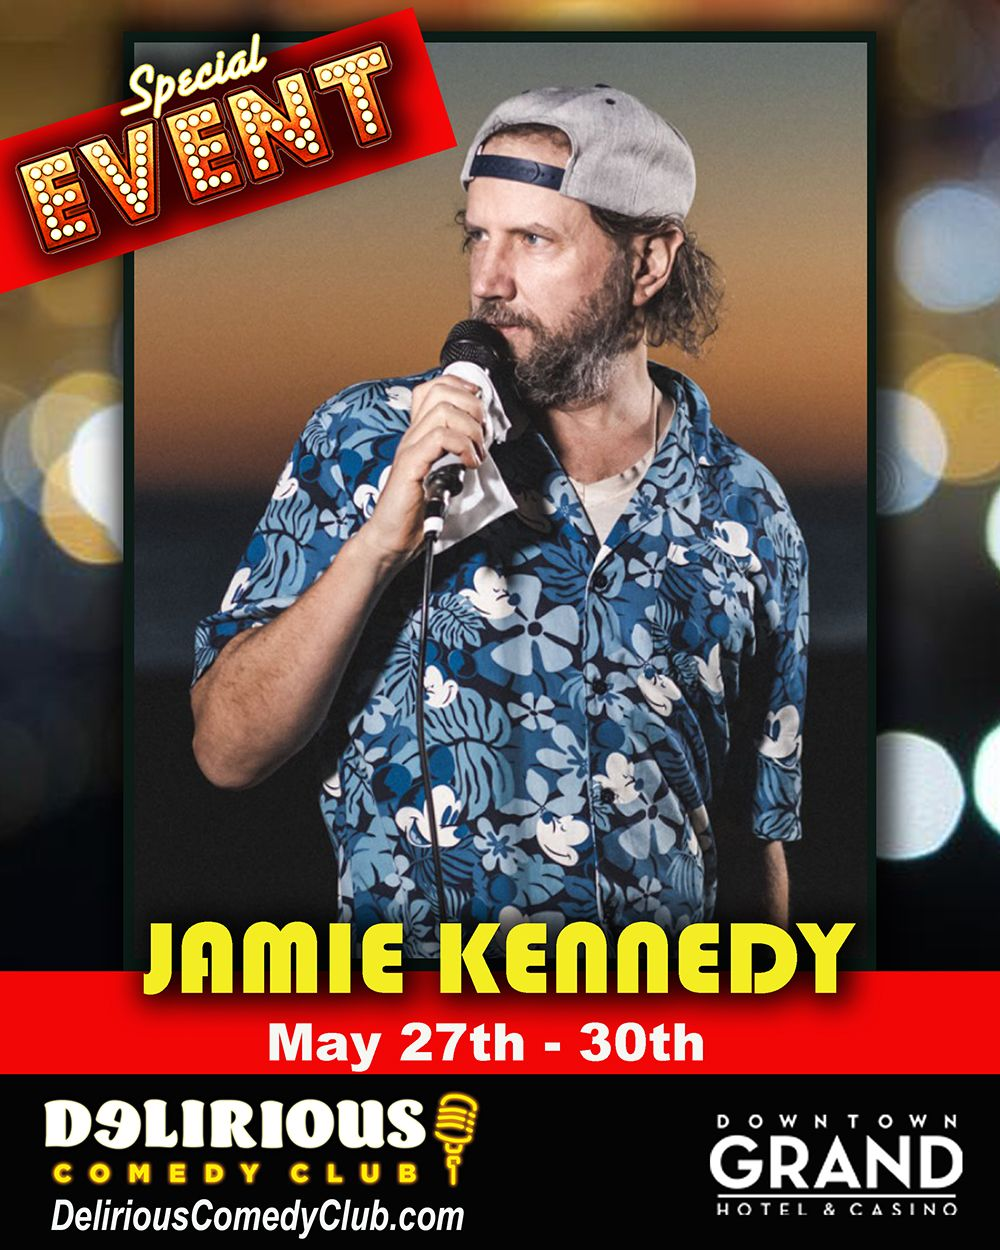 Special Event Jamie Kennedy May 27th-30th